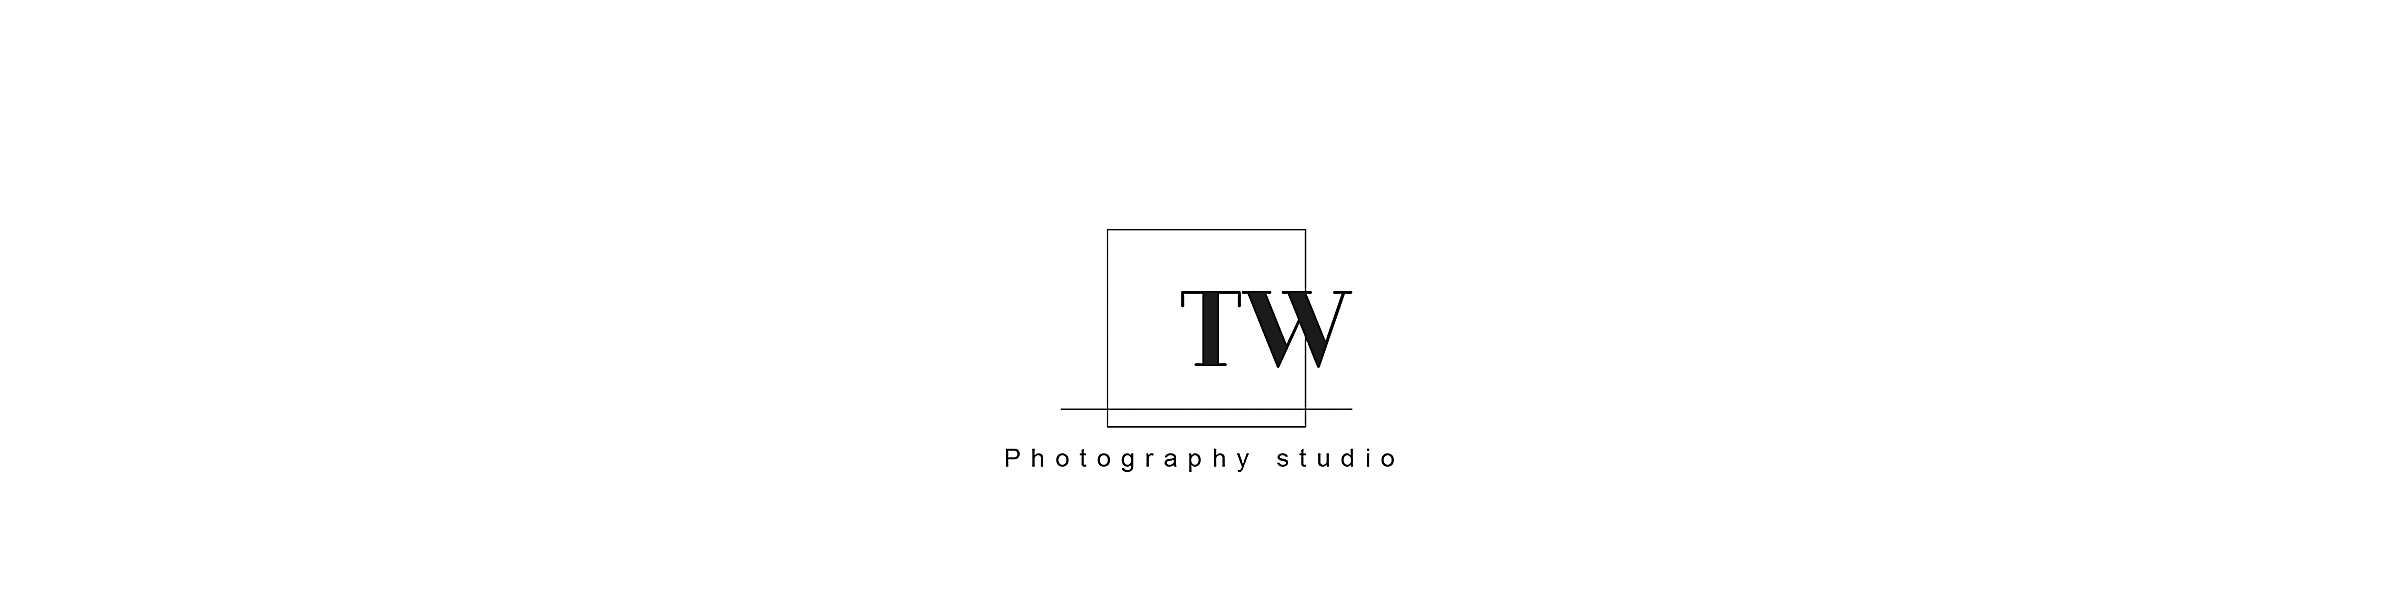 瞳心影像 Photography studio